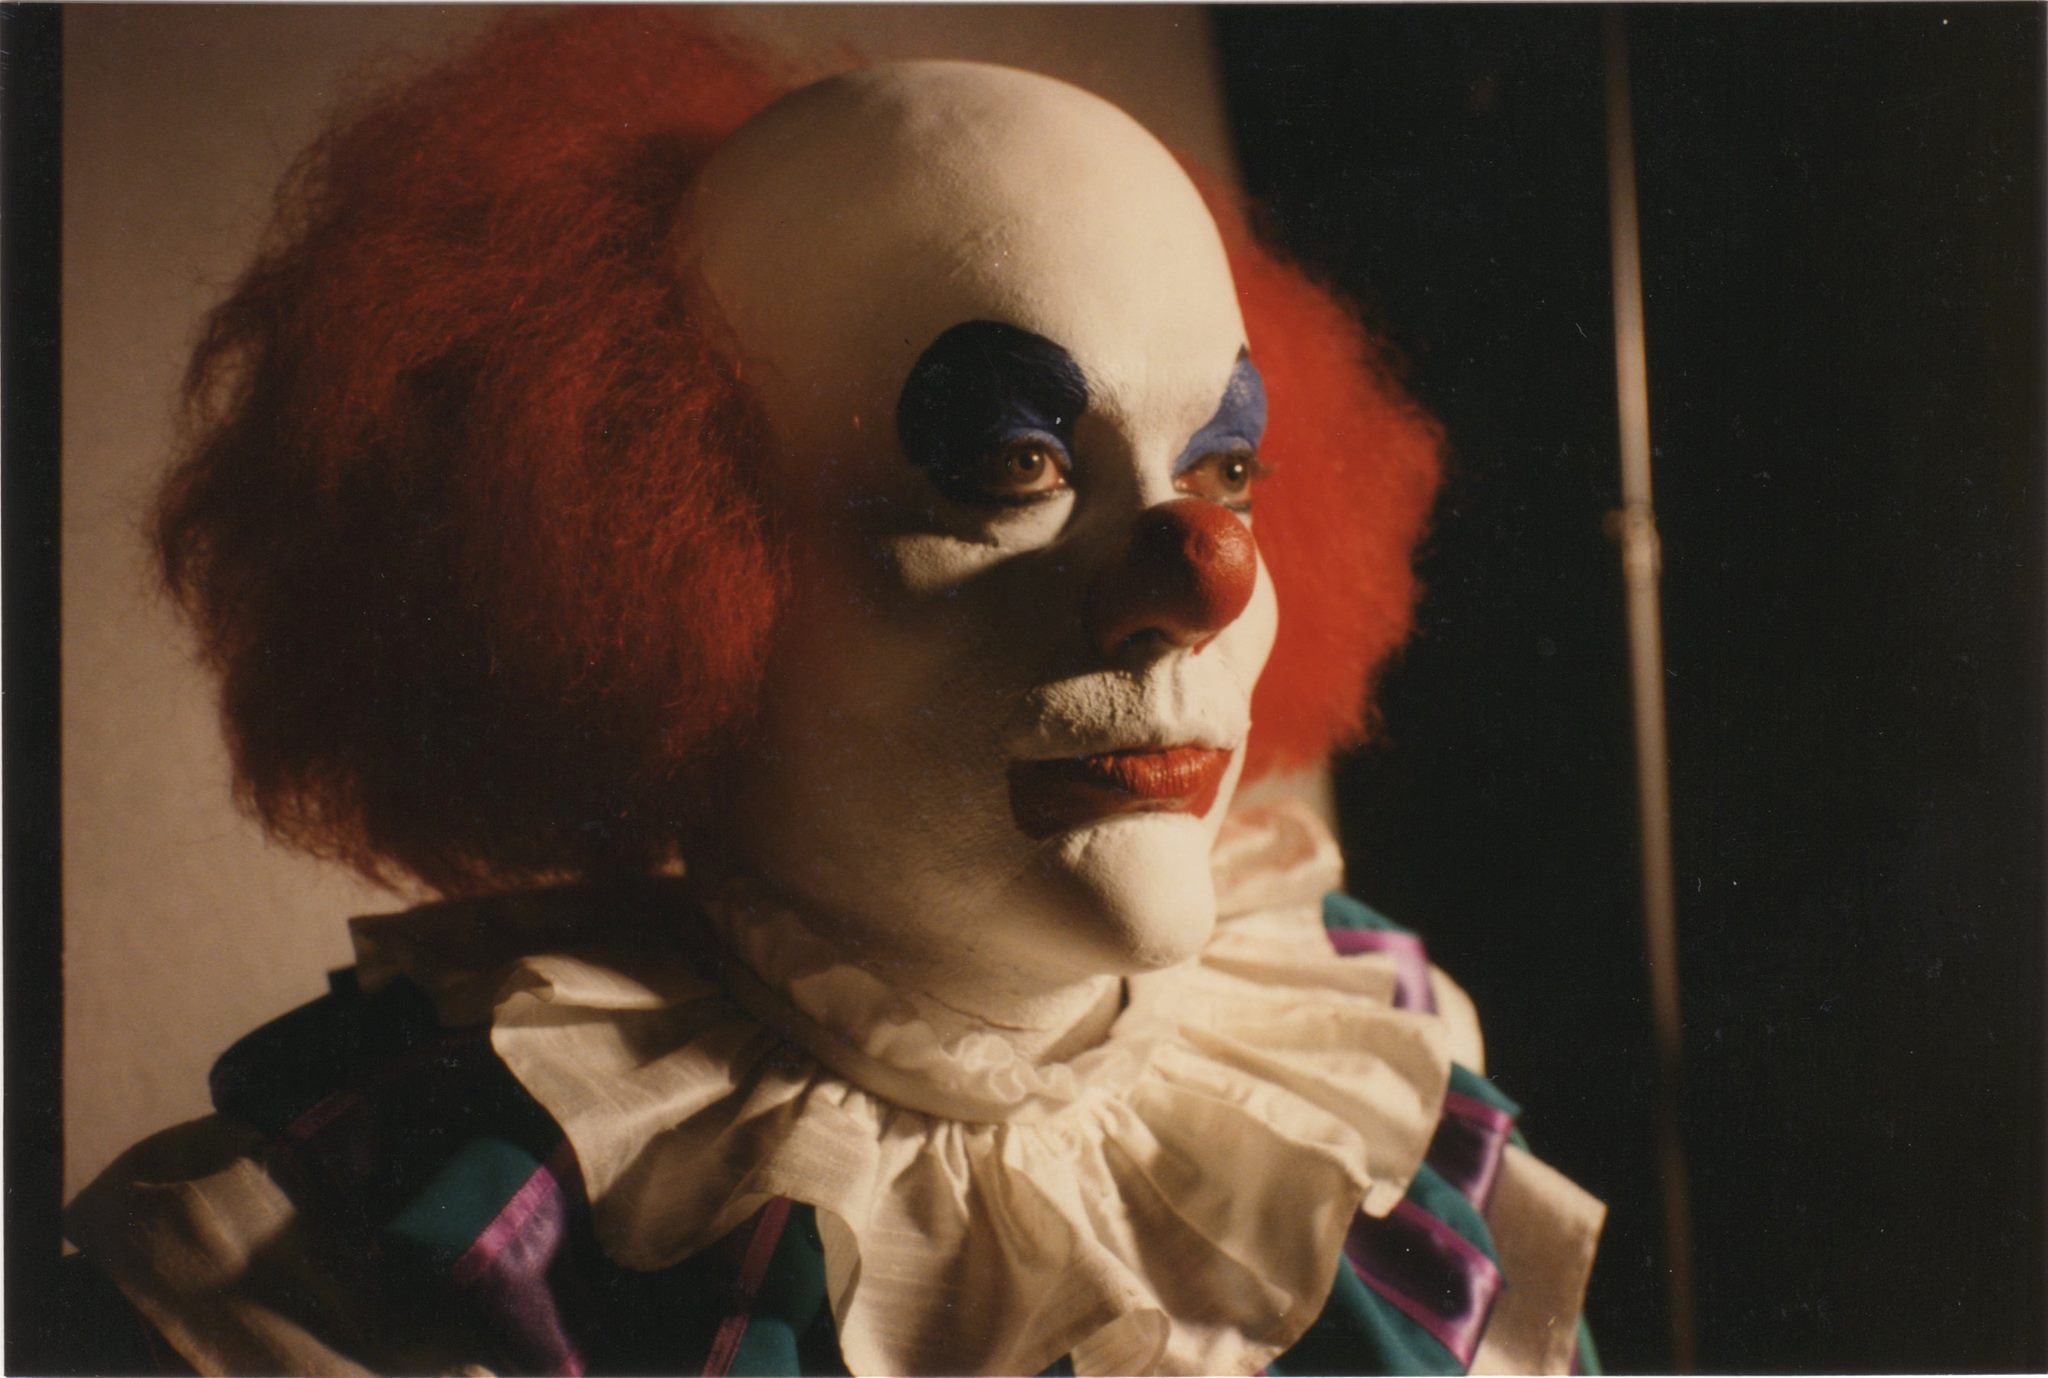 It BTS 1 - Exclusive: Face to Face with Pennywise: Talking Horror with Tim Curry on the Set of Stephen King's It